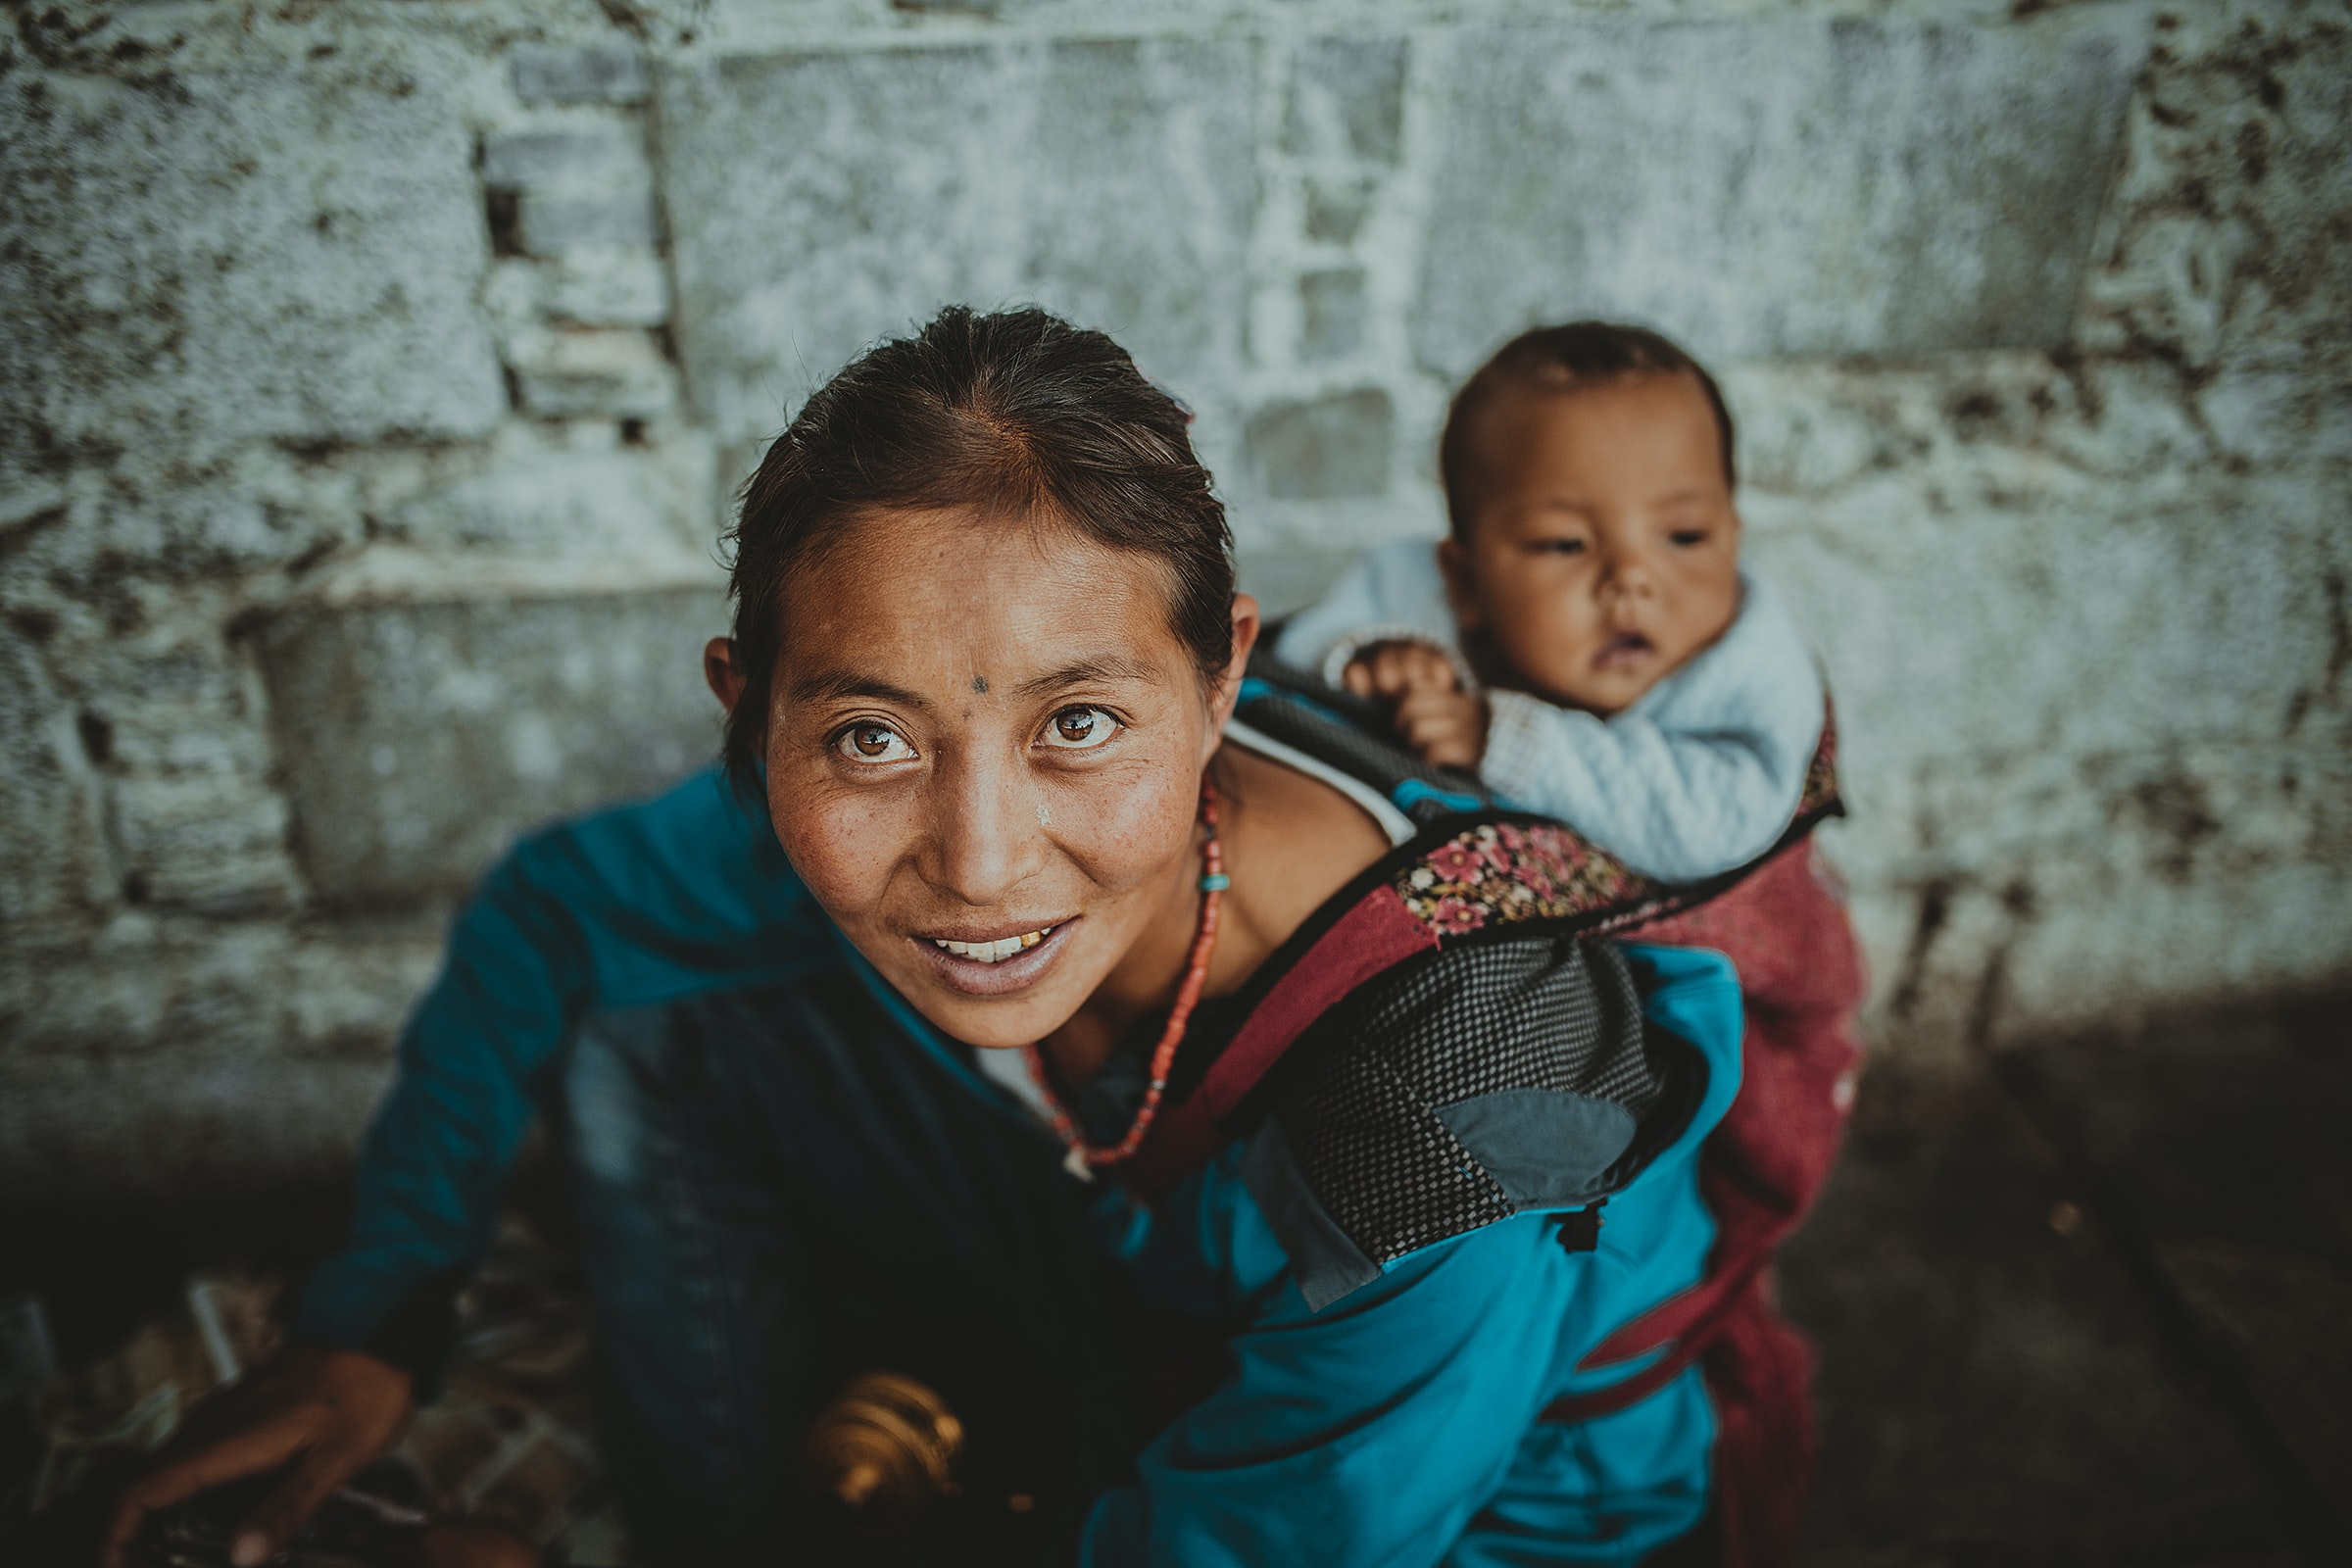 Himalayan woman on a stone staircase with her baby strapped to her back